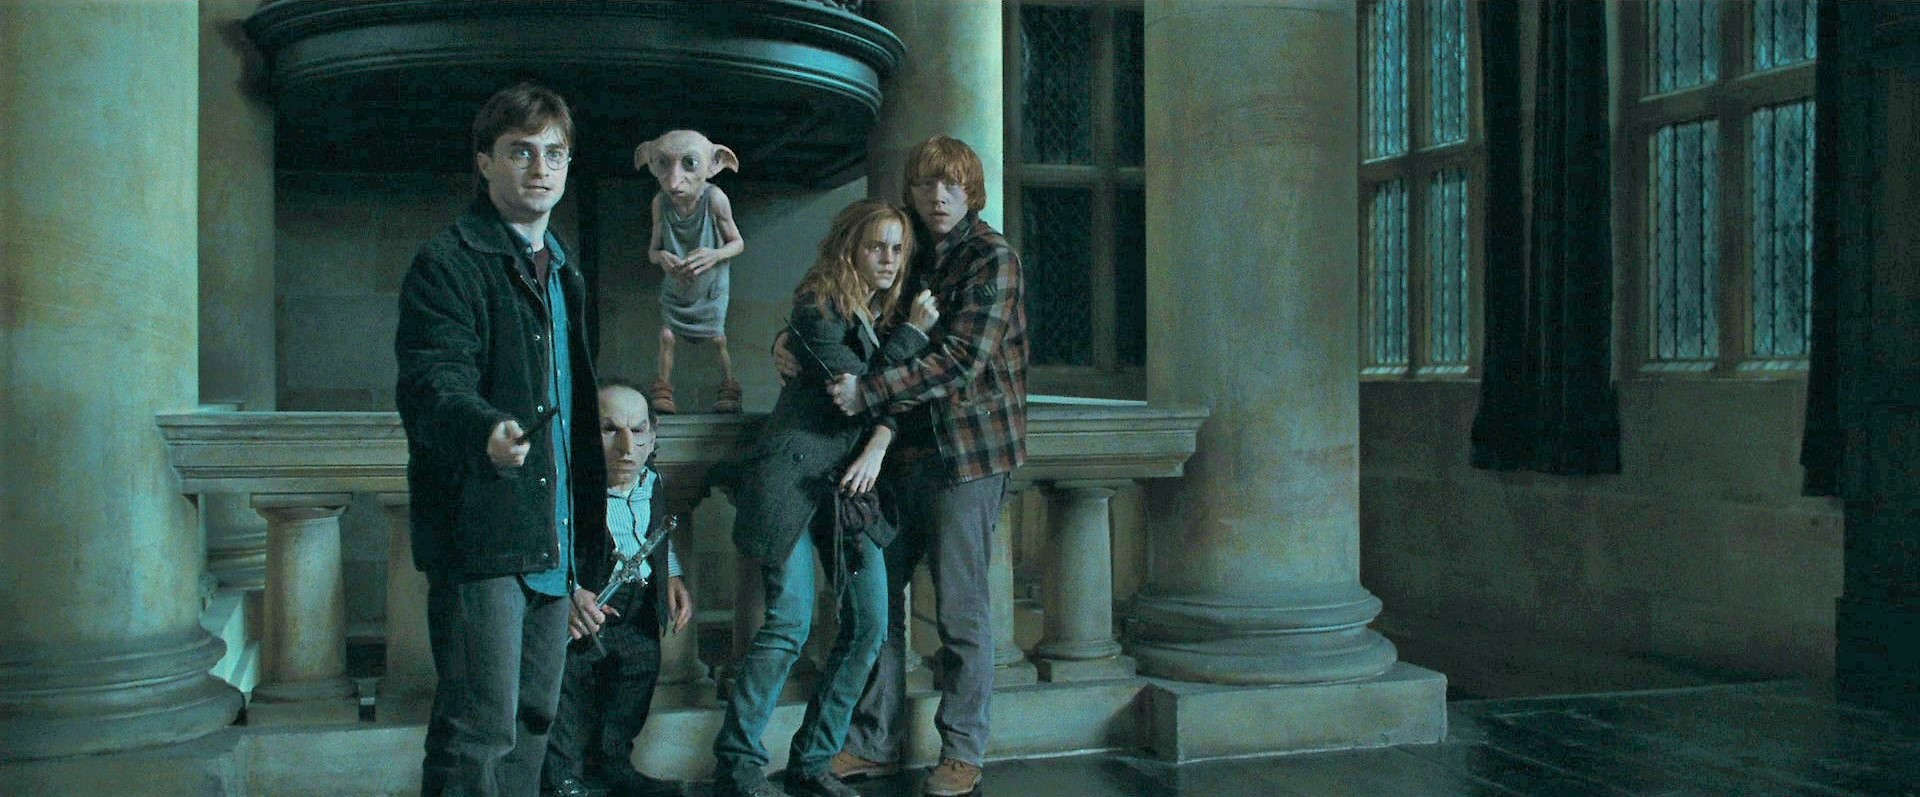 07 Dobby rescuing Harry Potter, Griphook, Hermione and Ron.jpg